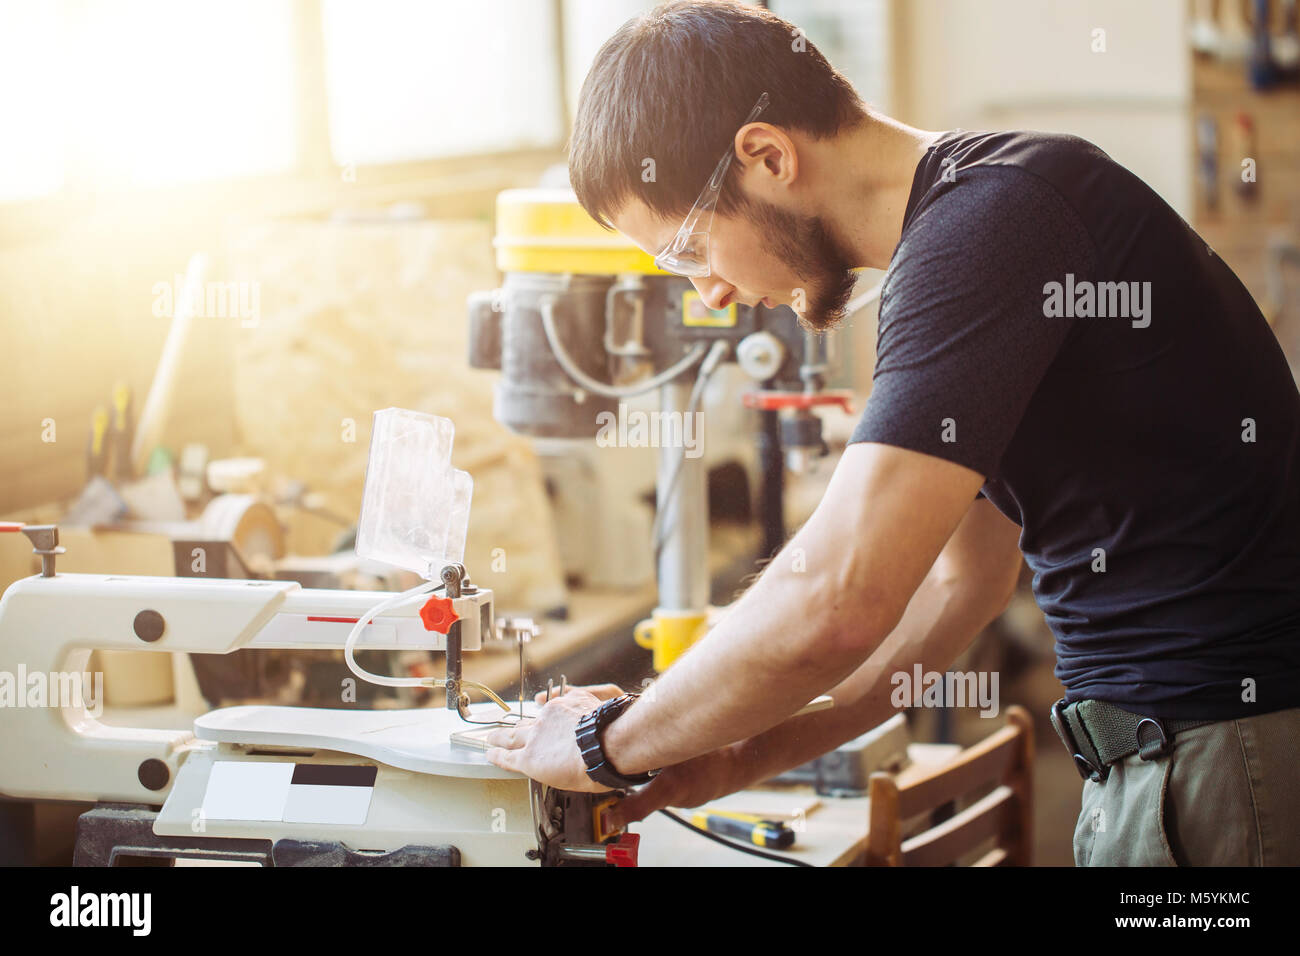 Carpenter engaged in processing wood at the sawmill. - Stock Image